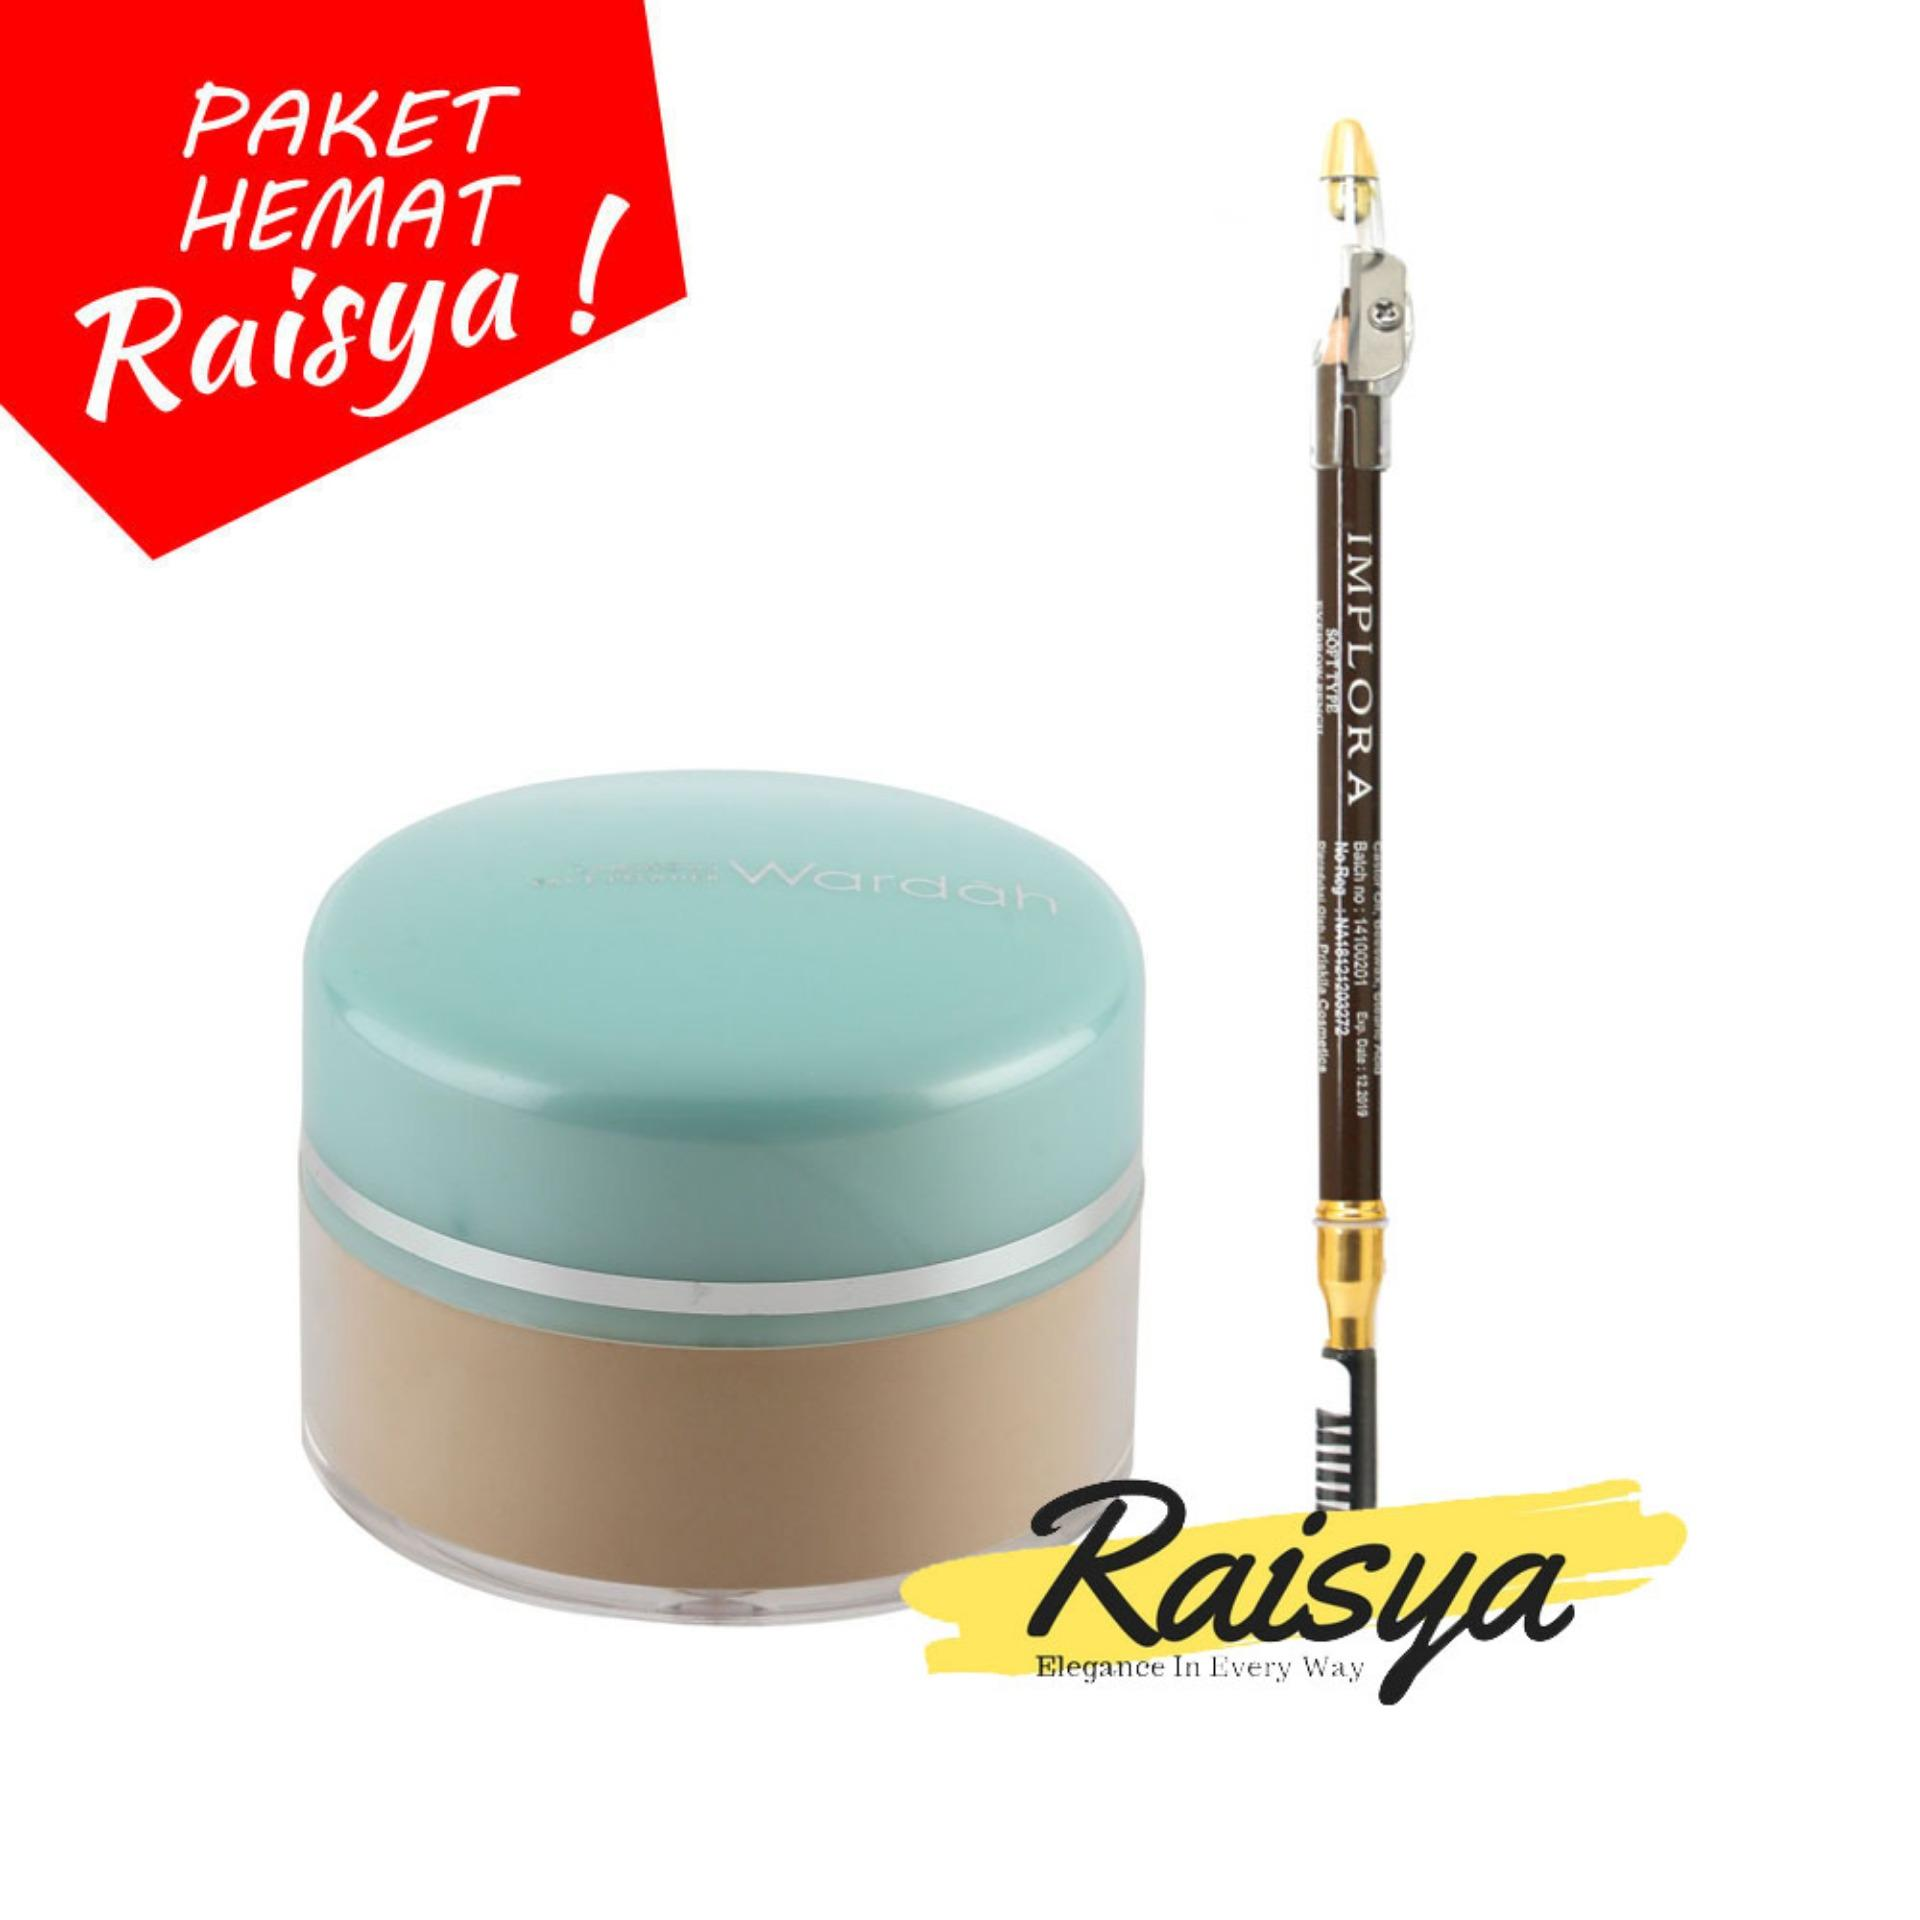 Wardah Everyday Luminous Face Powder - Bedak Tabur - 03 Ivory Free Implora Pensil Alis Coklat Resmi BPOM